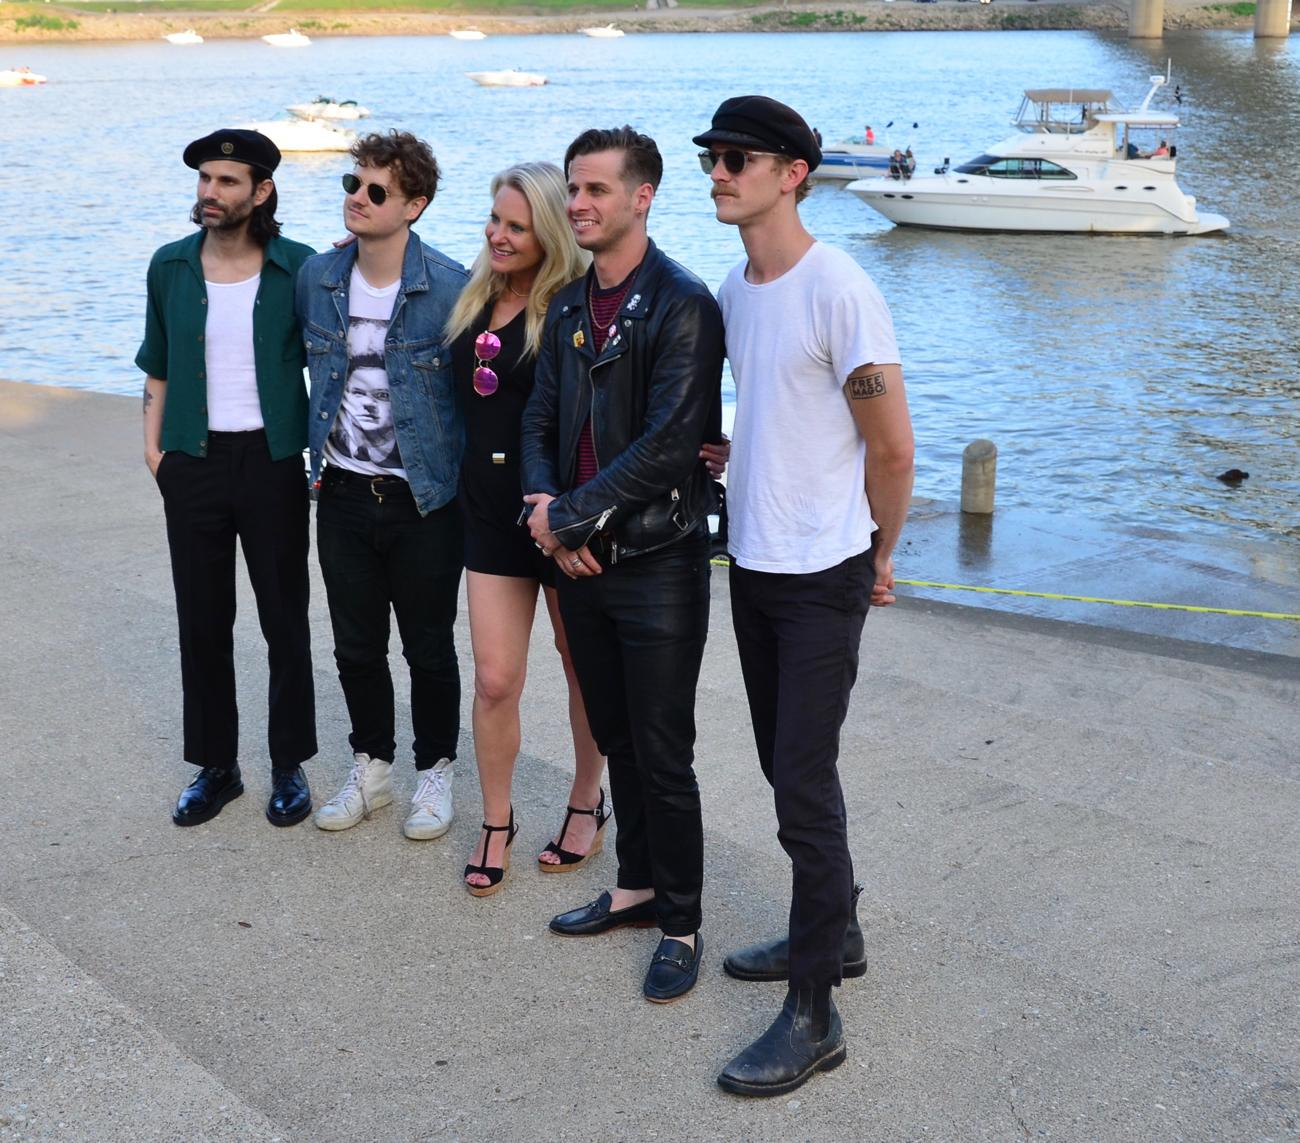 Jamie Humes nabbing a pic with Foster The People before their set on Saturday. / Image: Leah Zipperstein, Cincinnati Refined // Published: 6.4.18